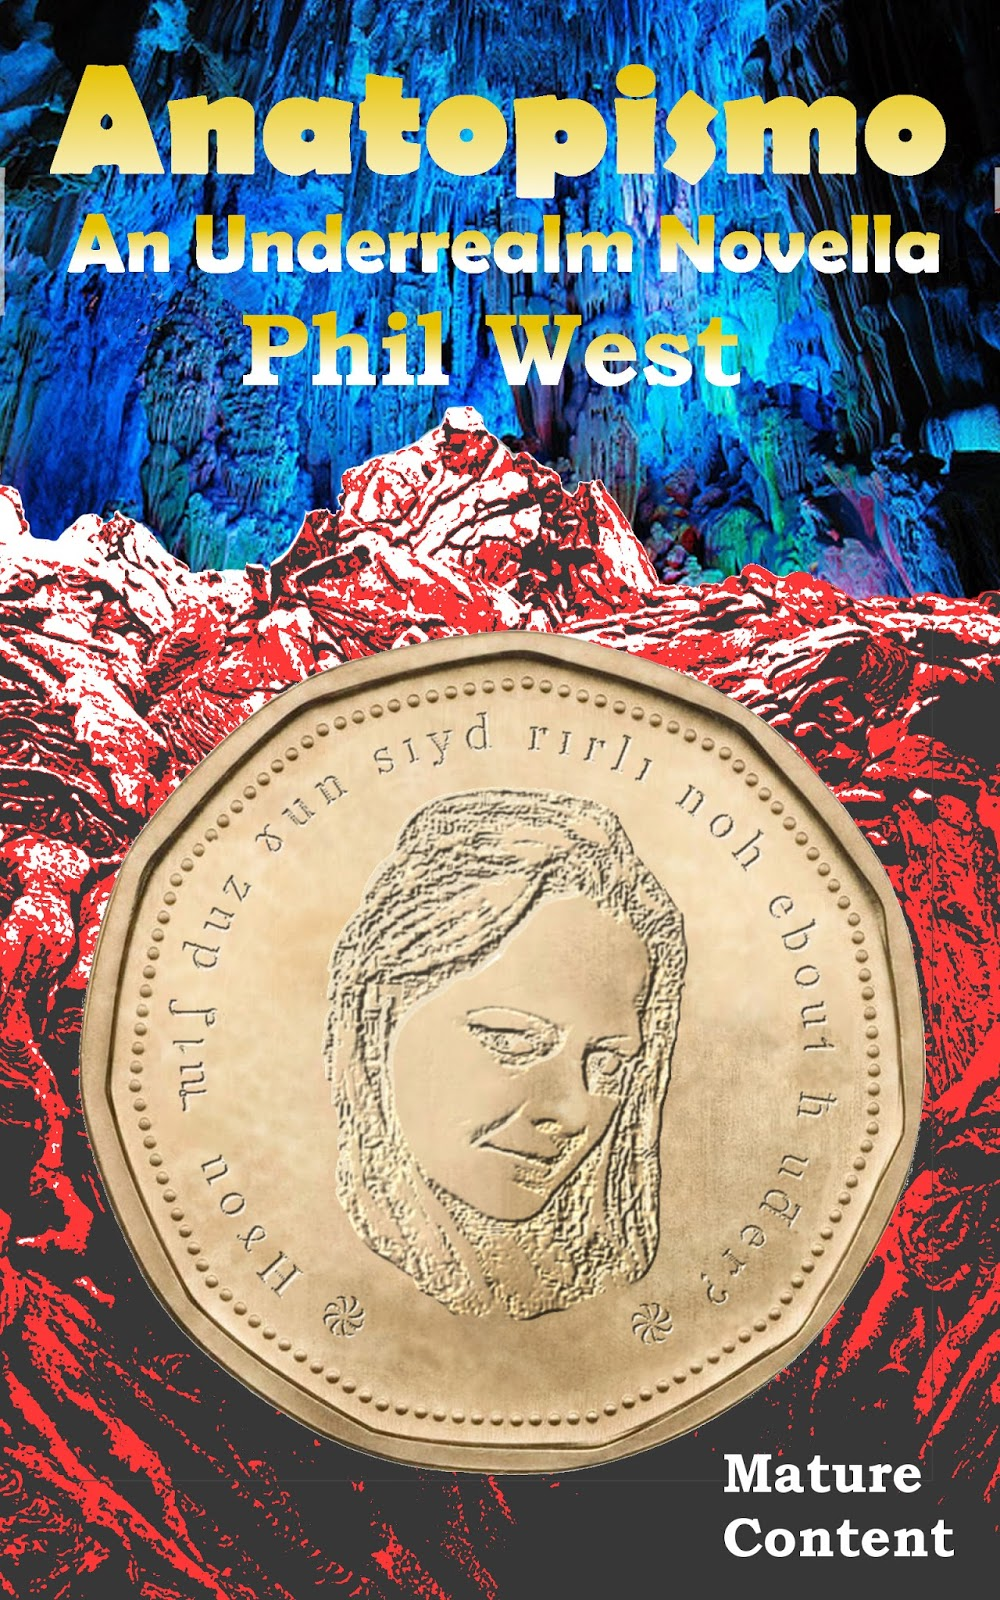 https://www.amazon.com/Anatopismo-Underrealm-Novella-Phil-West-ebook/dp/B077G7MMFM